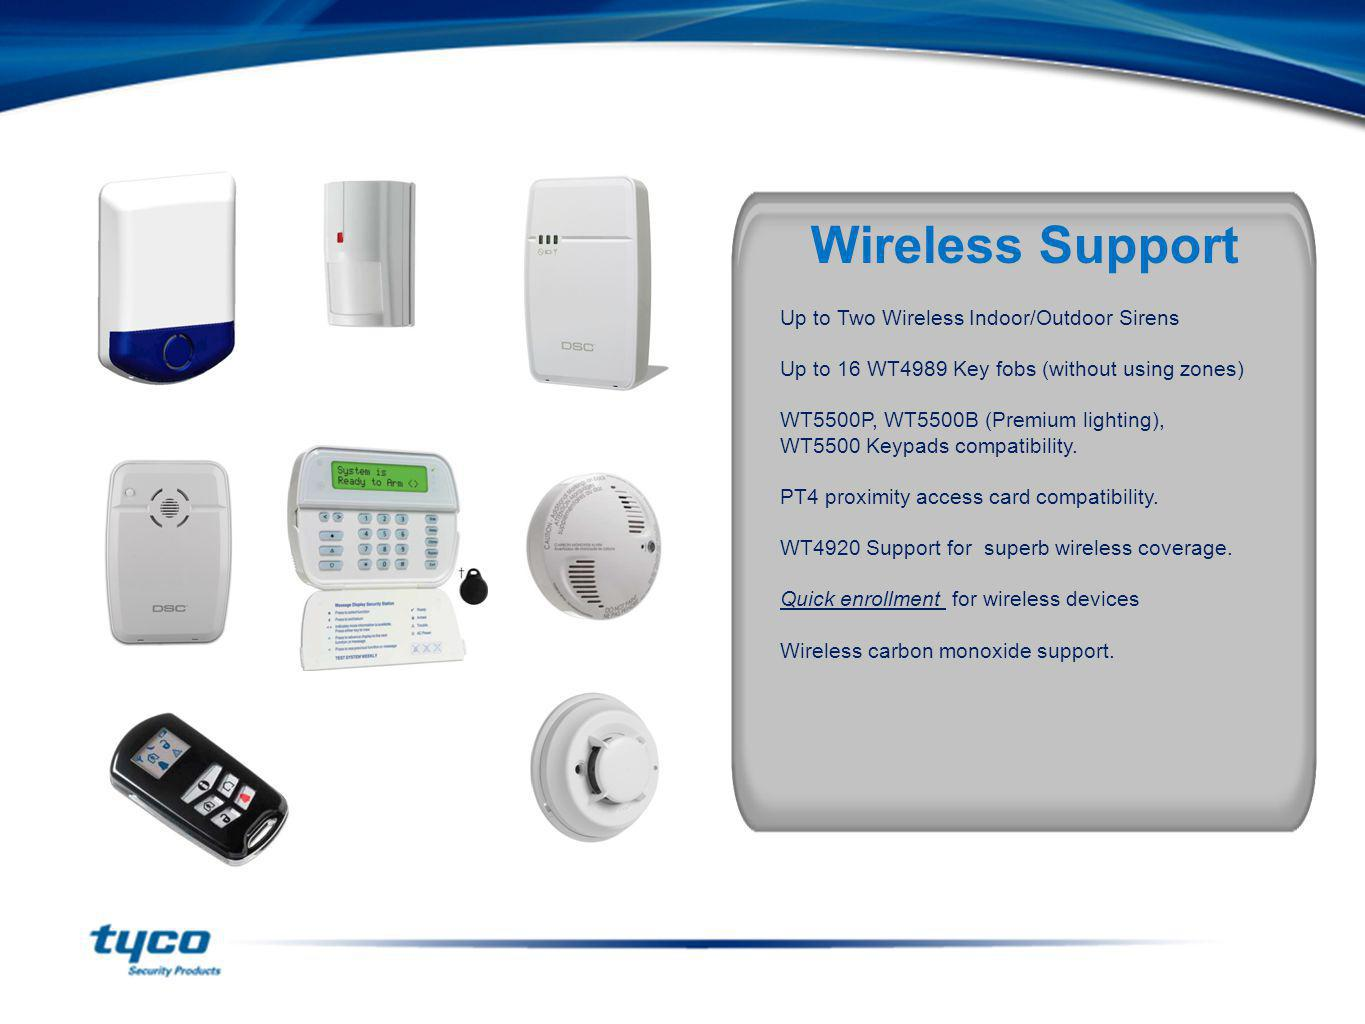 Note: In addition All 1-way 433MHz devices are supported Up to Two Wireless Indoor/Outdoor Sirens Up to 16 WT4989 Key fobs (without using zones) WT550